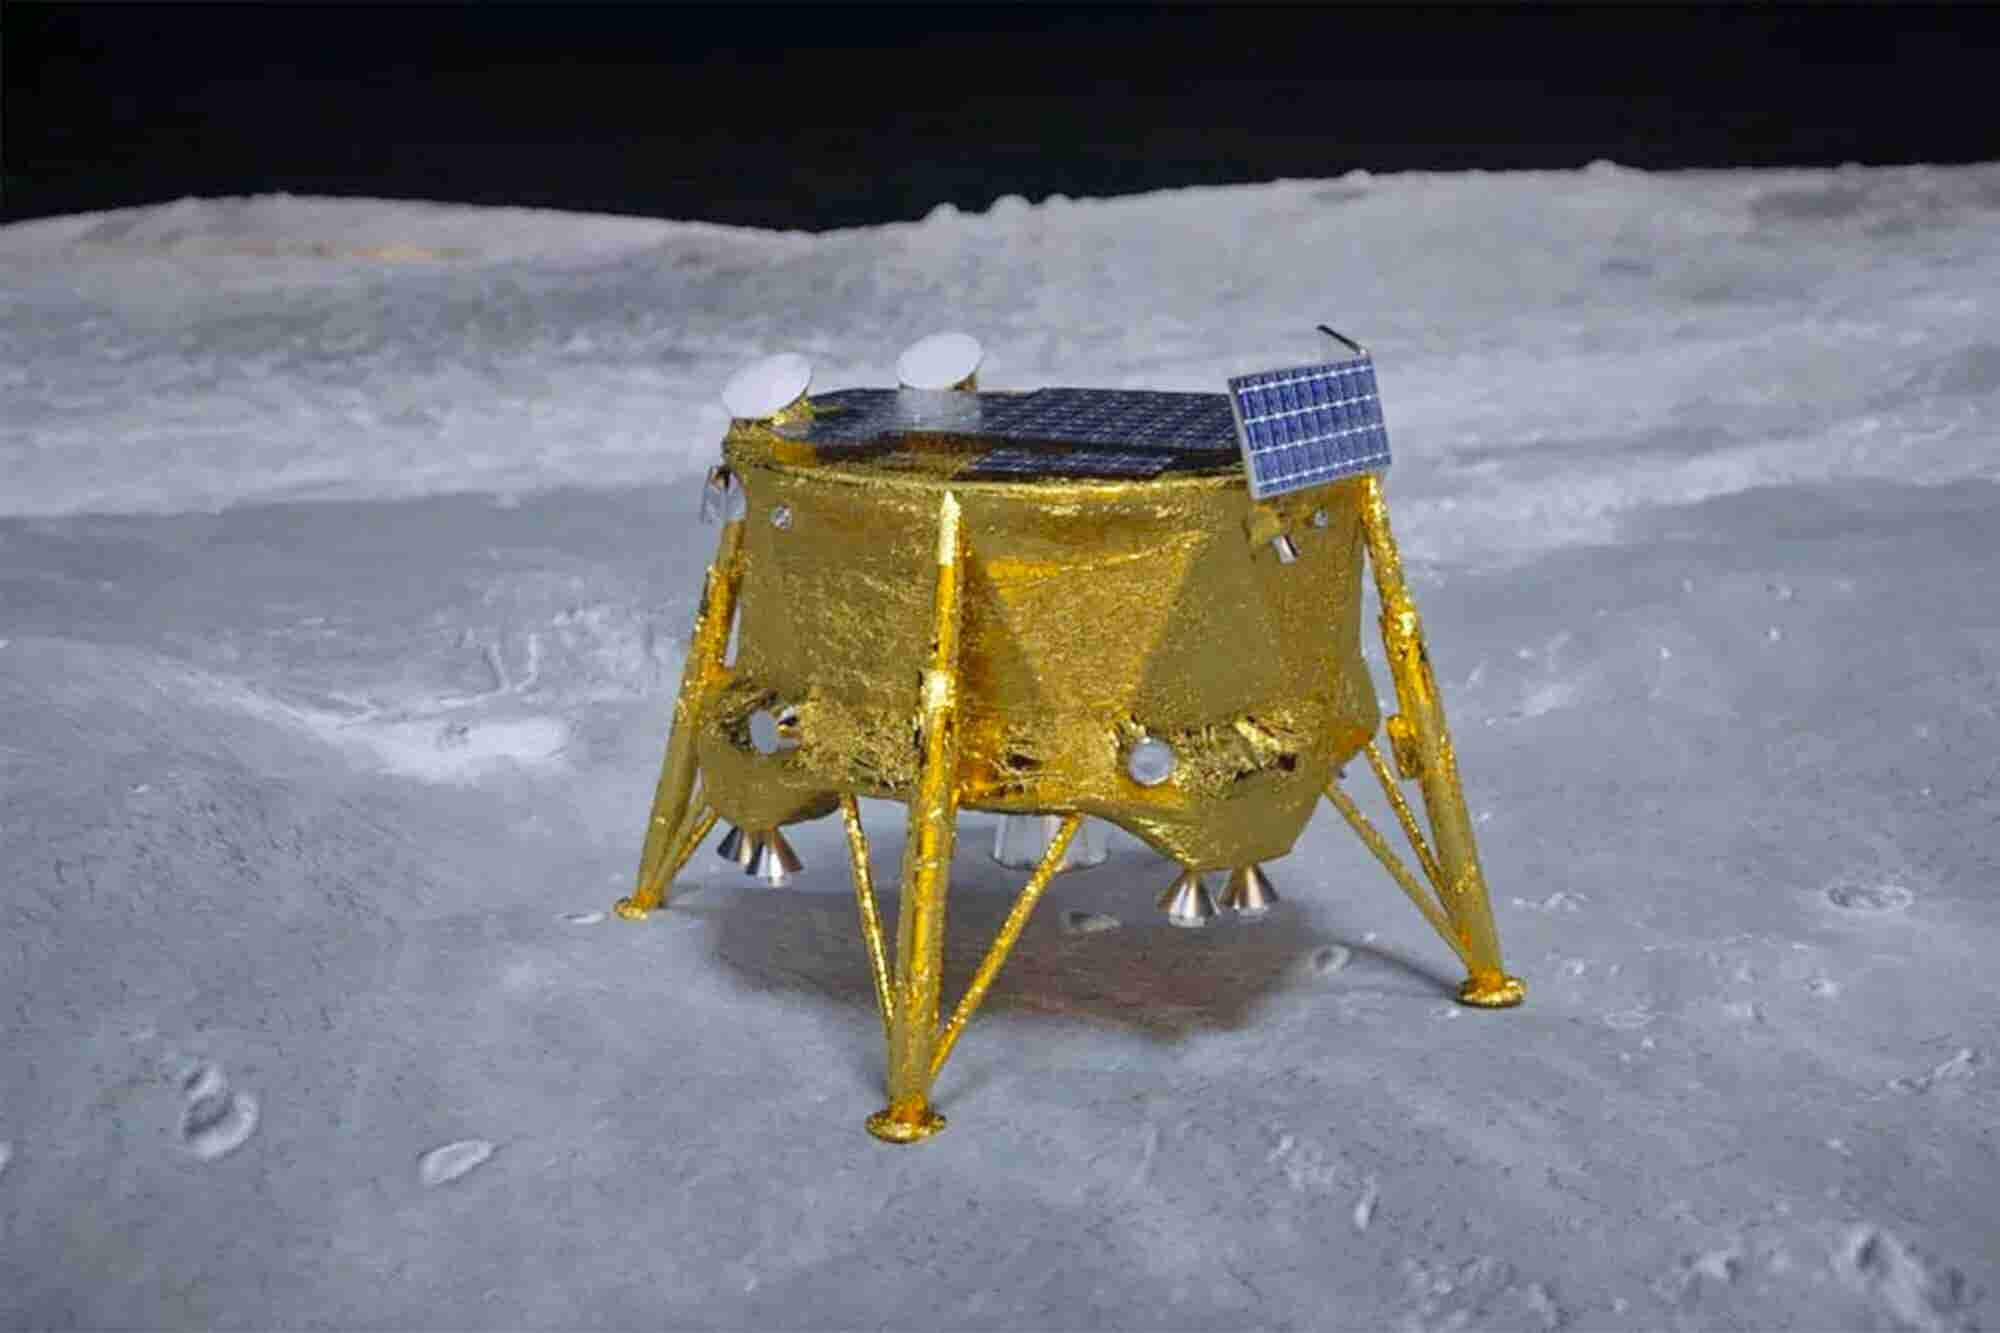 SpaceX Launches the First Private Moon Lander on Israel's Behalf